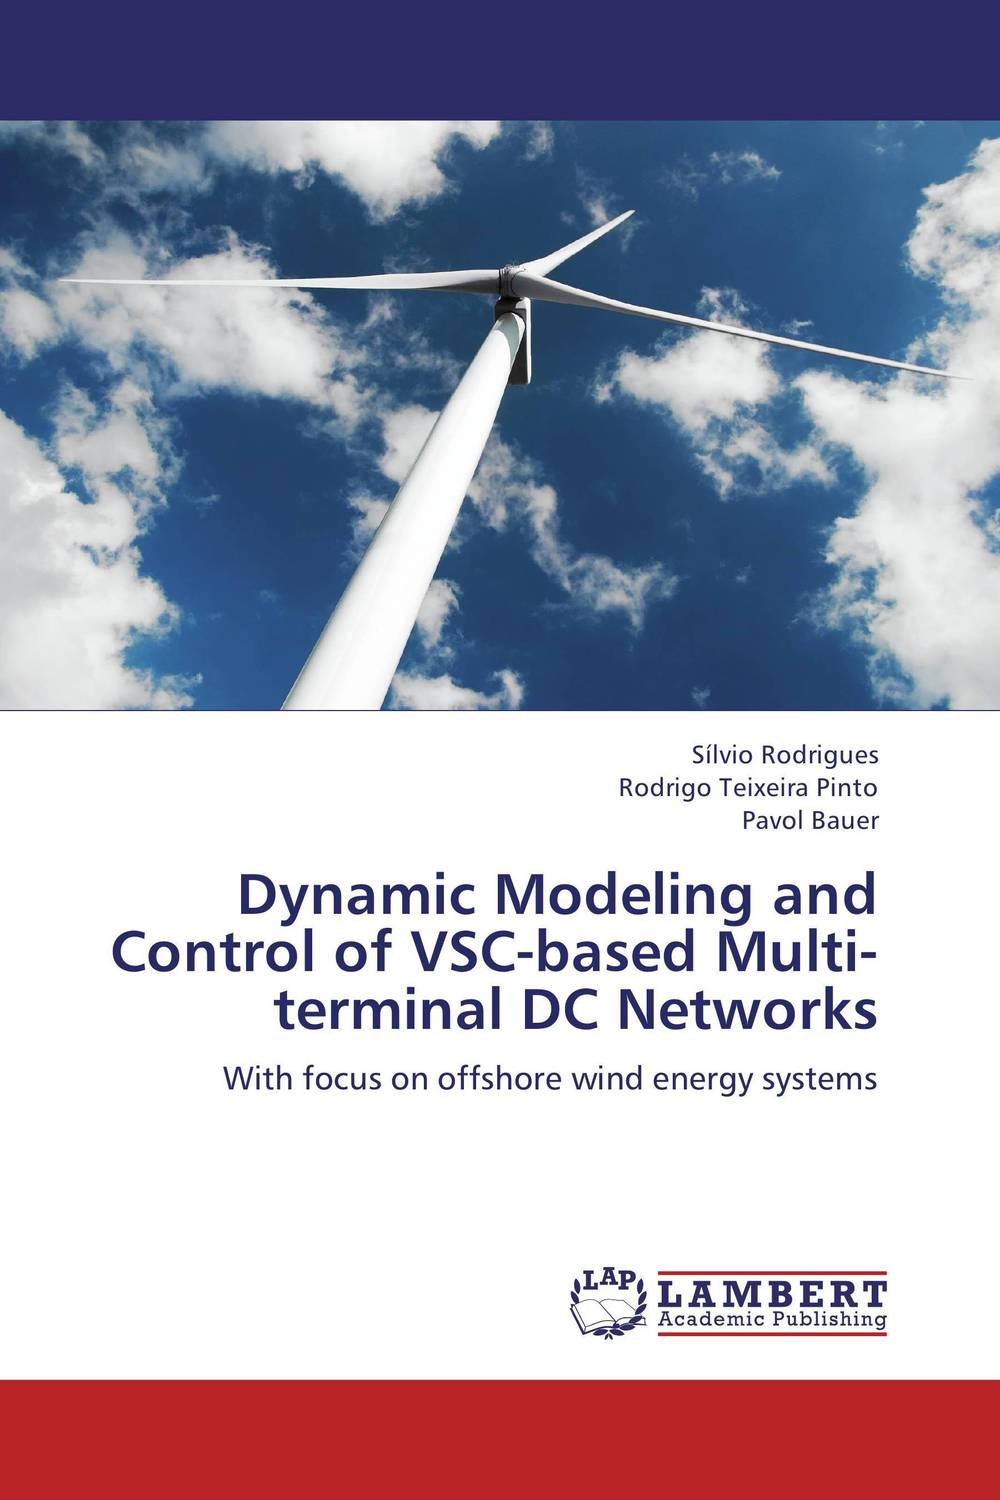 Dynamic Modeling and Control of VSC-based Multi-terminal DC Networks battery storage systems for wind farms